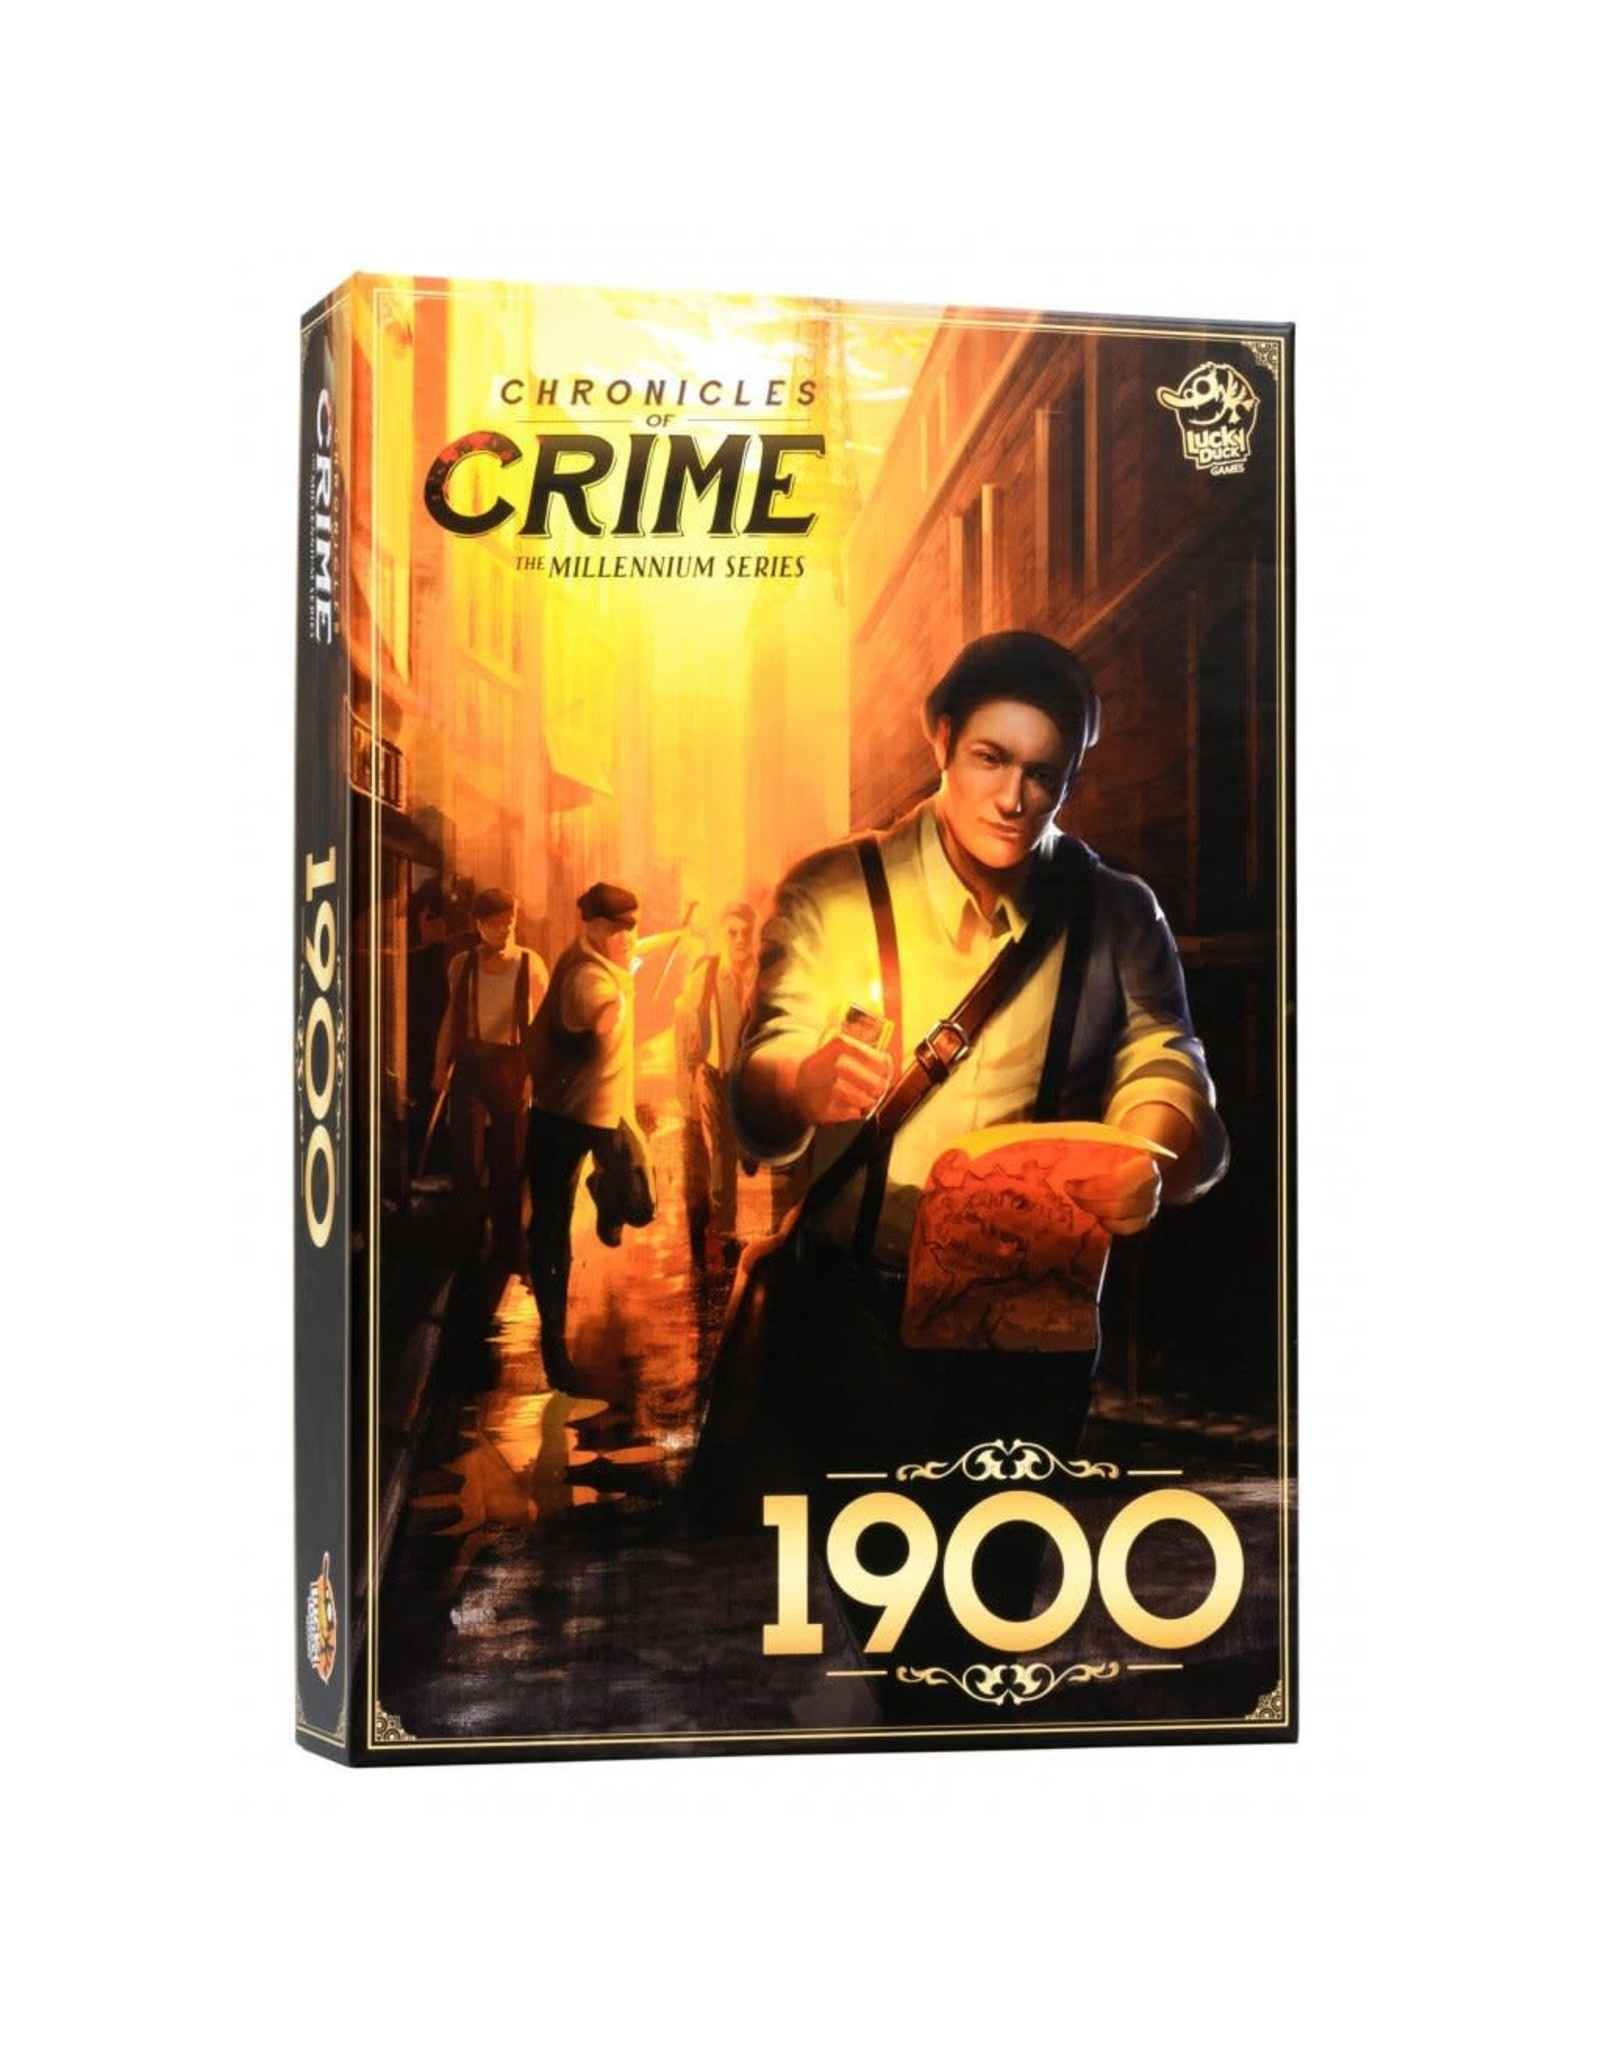 Chronicles of Crime: The Millennium Series: 1900